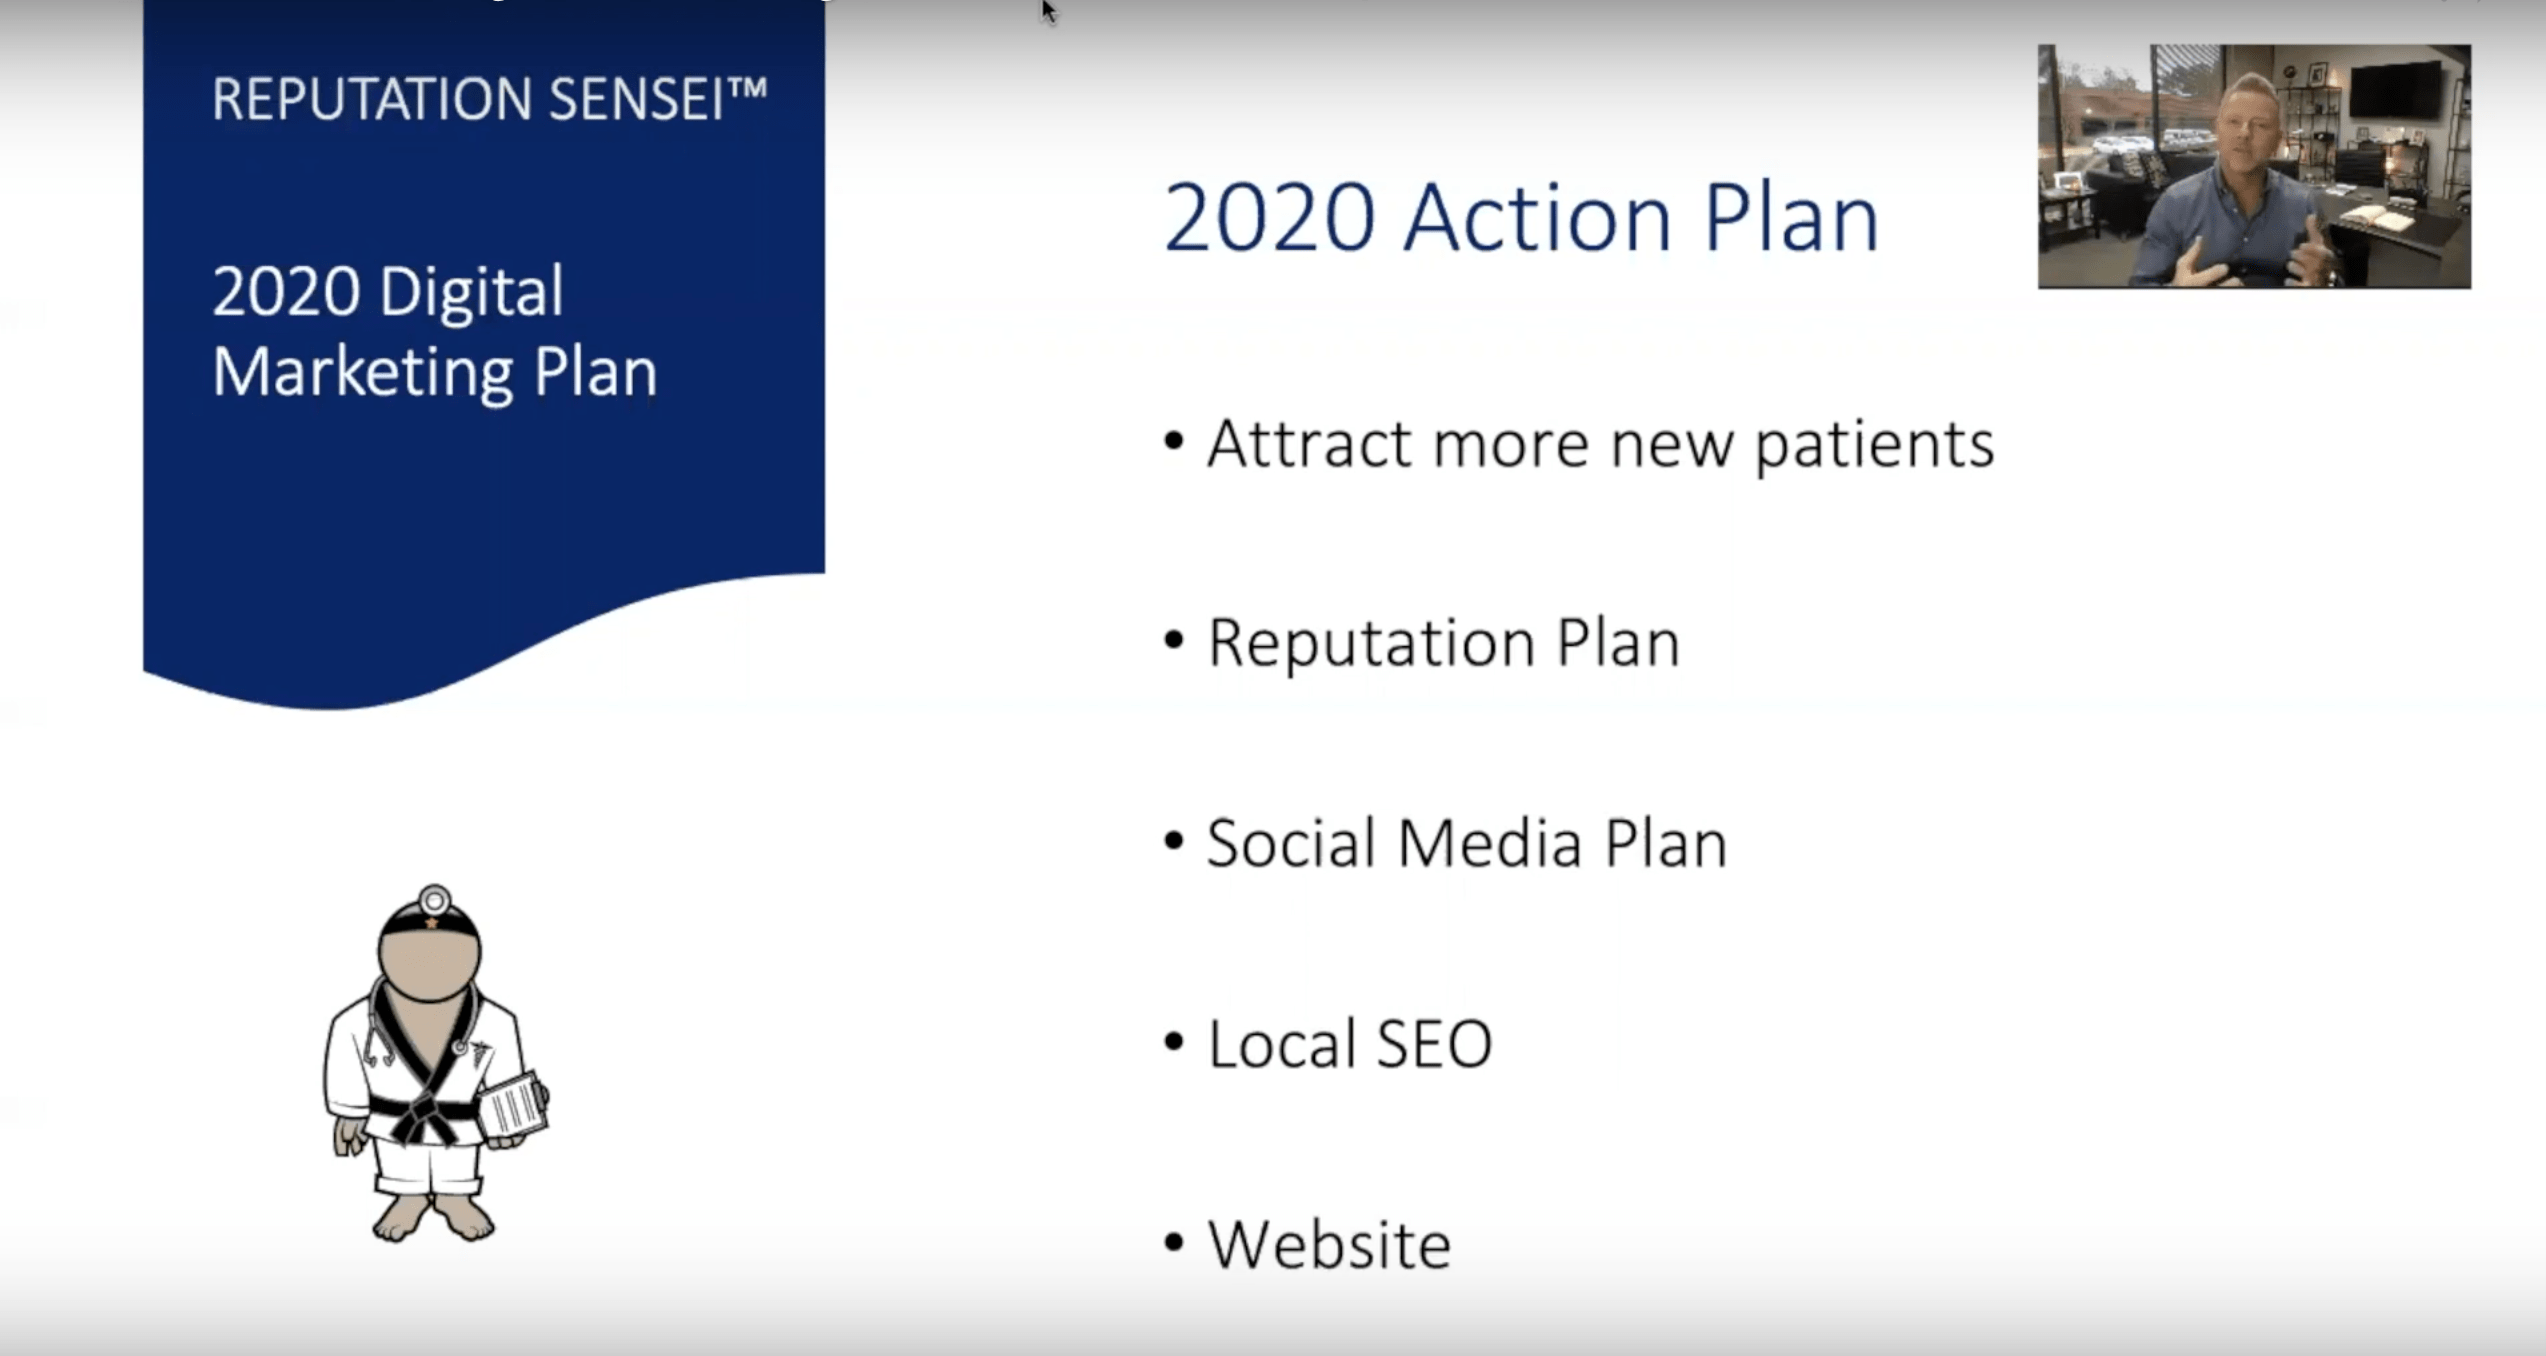 Digital Marketing Action Plan for 2020 - Blog Image